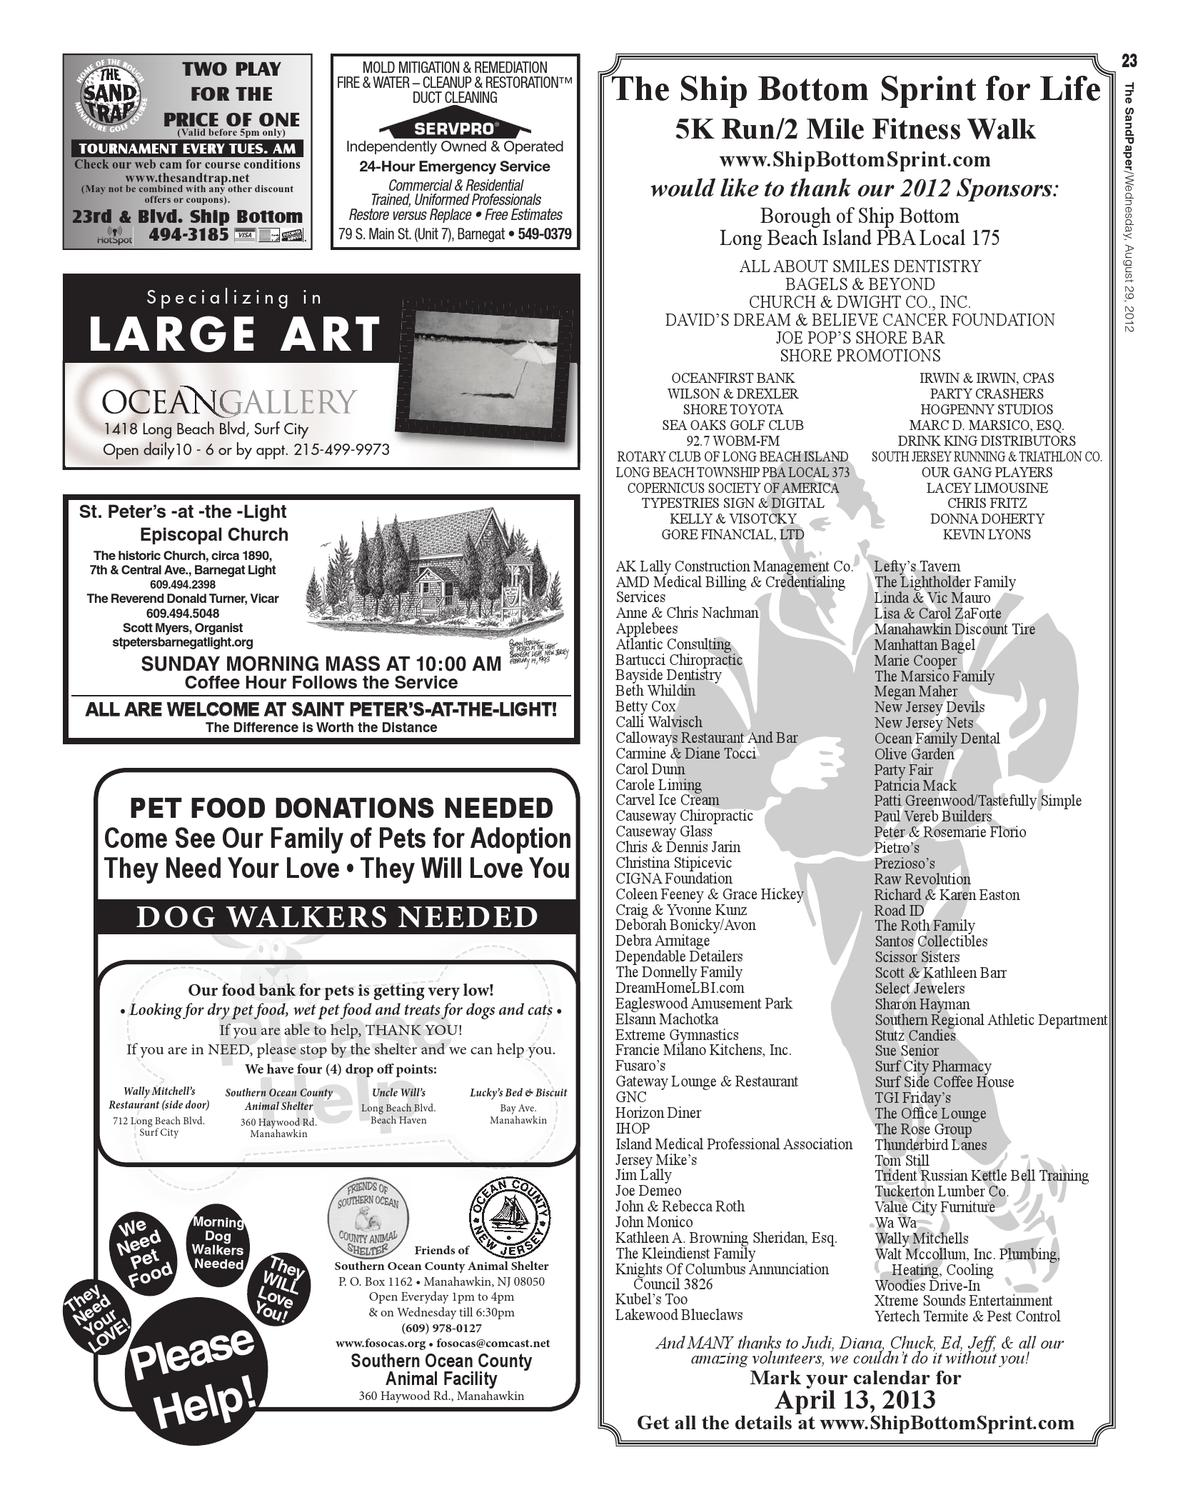 The SandPaper, August 29, 2012 Vol  38 No  34 by The